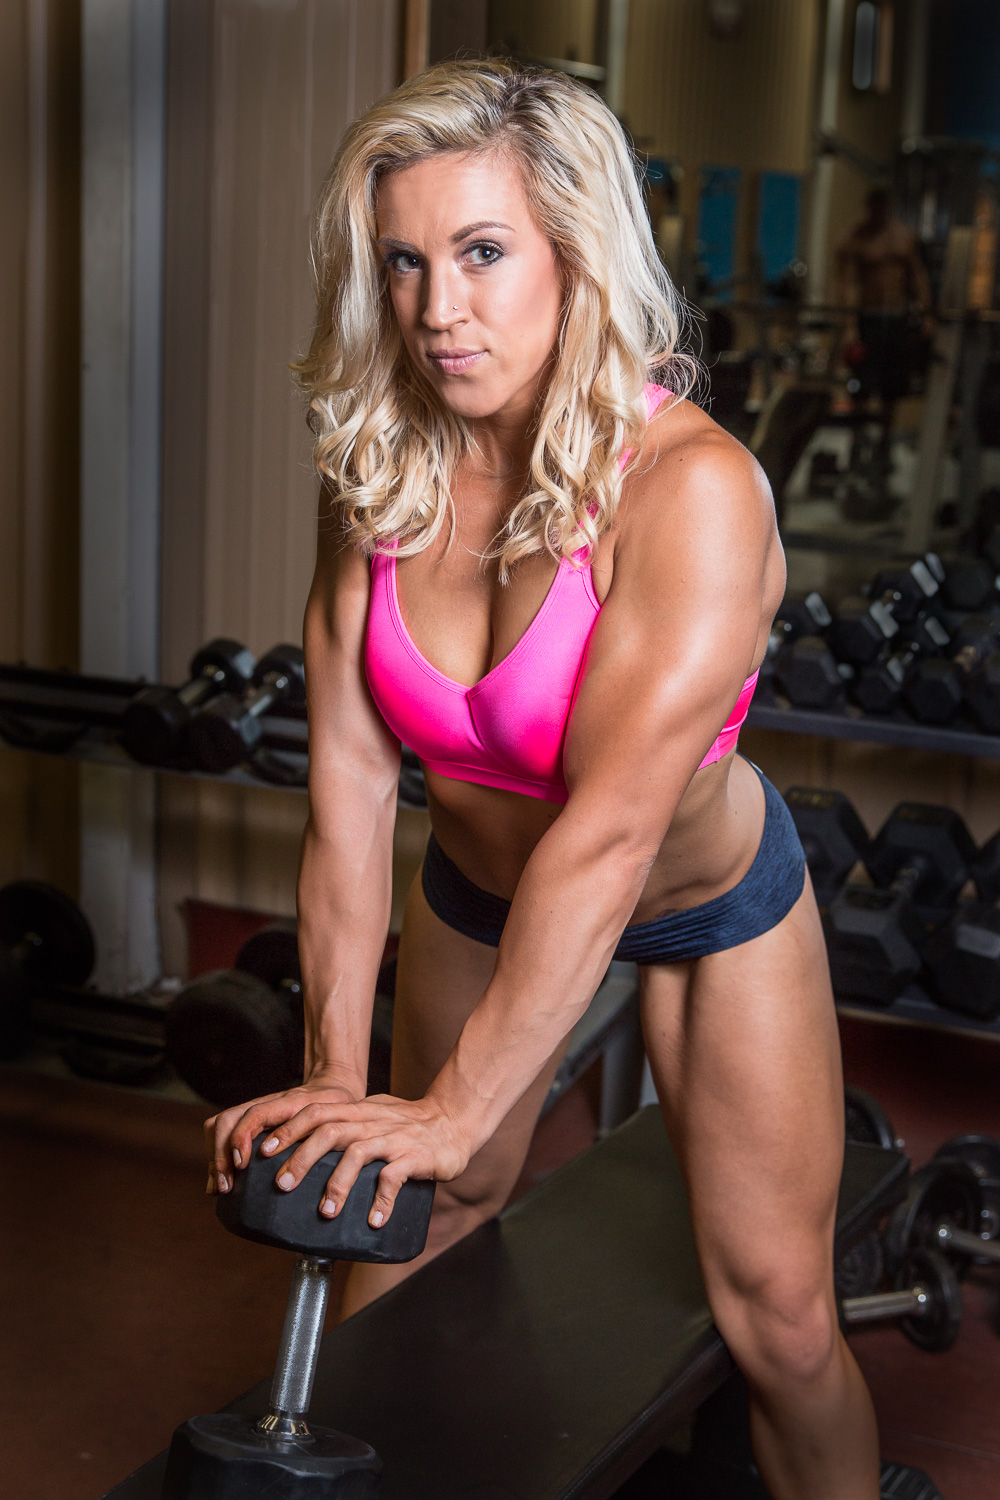 fitness_photography_gym_weights_1.jpg